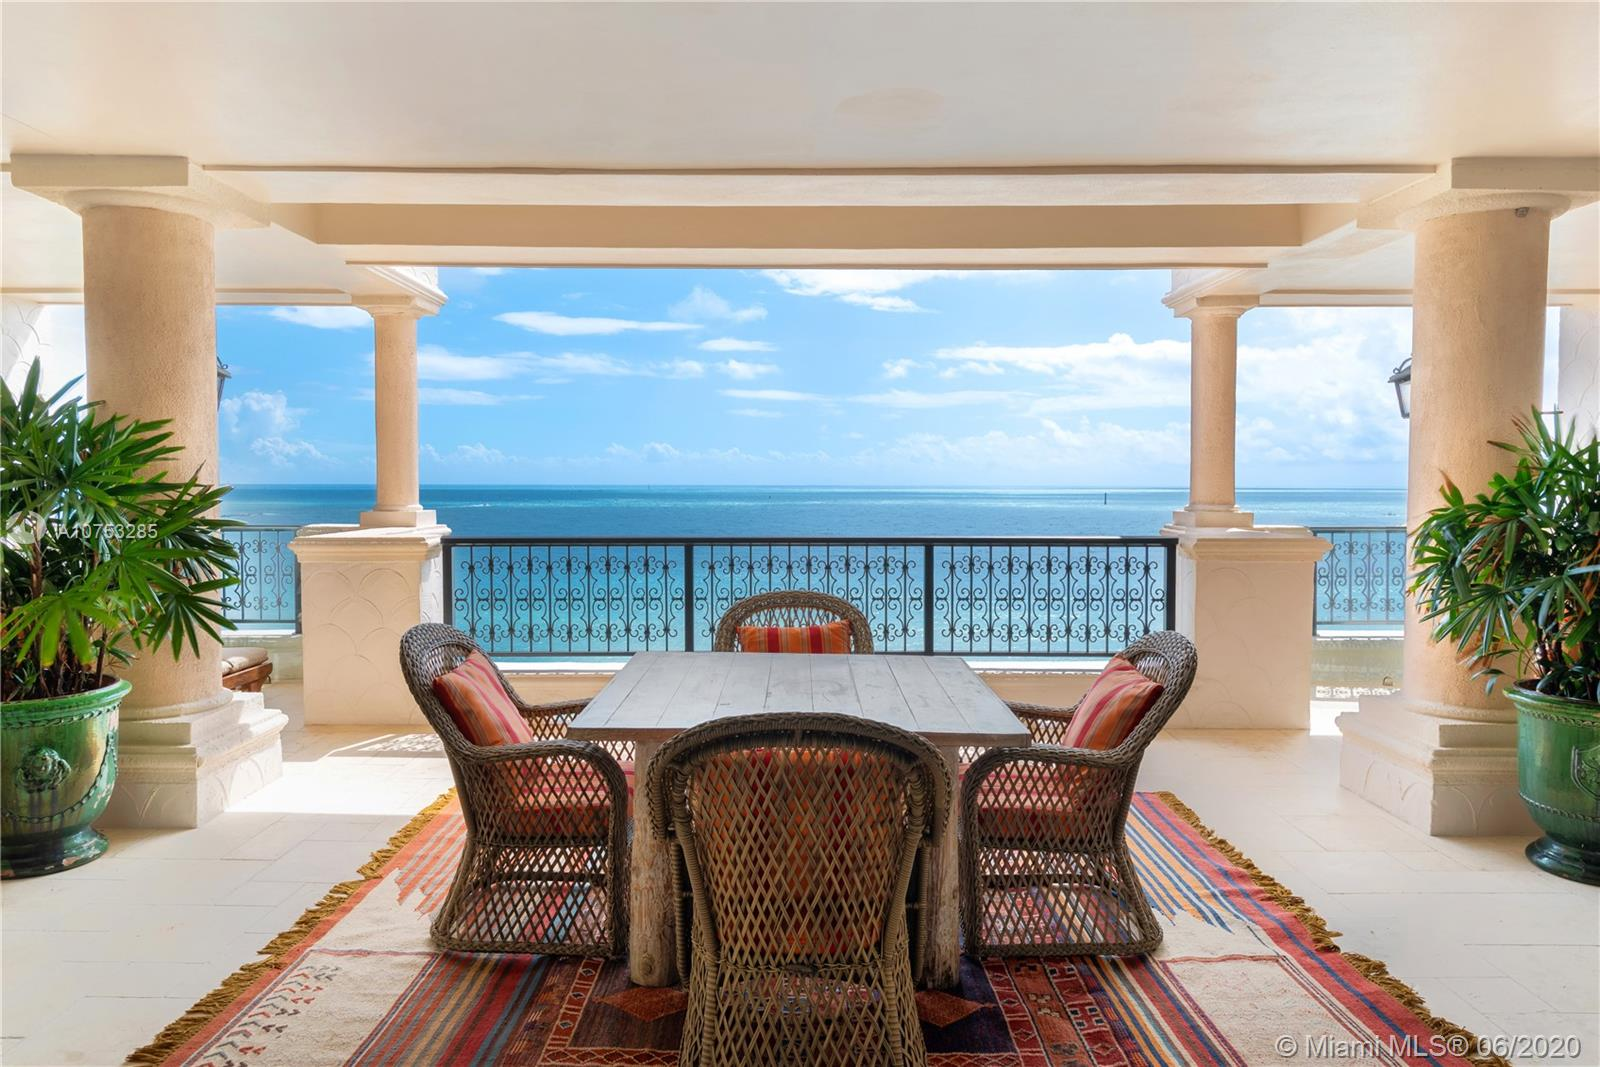 This stunning oceanside lower penthouse offers million-dollar direct ocean views. Enjoy the breathtaking Miami skyline, oceanfront views, and golf course views from every room and balcony. Boasting 5 bedrooms, 5 bathrooms, and 1 half bath, this 6,170 square foot residence offers custom features throughout. Intricate design details include a remarkable fireplace, exposed wooden beams, and custom carved wooden doors in the living room. Gourmet kitchen that features top-of-the-line Wolf and Miele appliances including a Wolf induction burner. Includes two covered garage parking spots and golf cart parking space. Wake up in your master suite with sensational ocean views, his and hers closets and a private balcony. Live the ocean front lifestyle dream of Fisher Island.